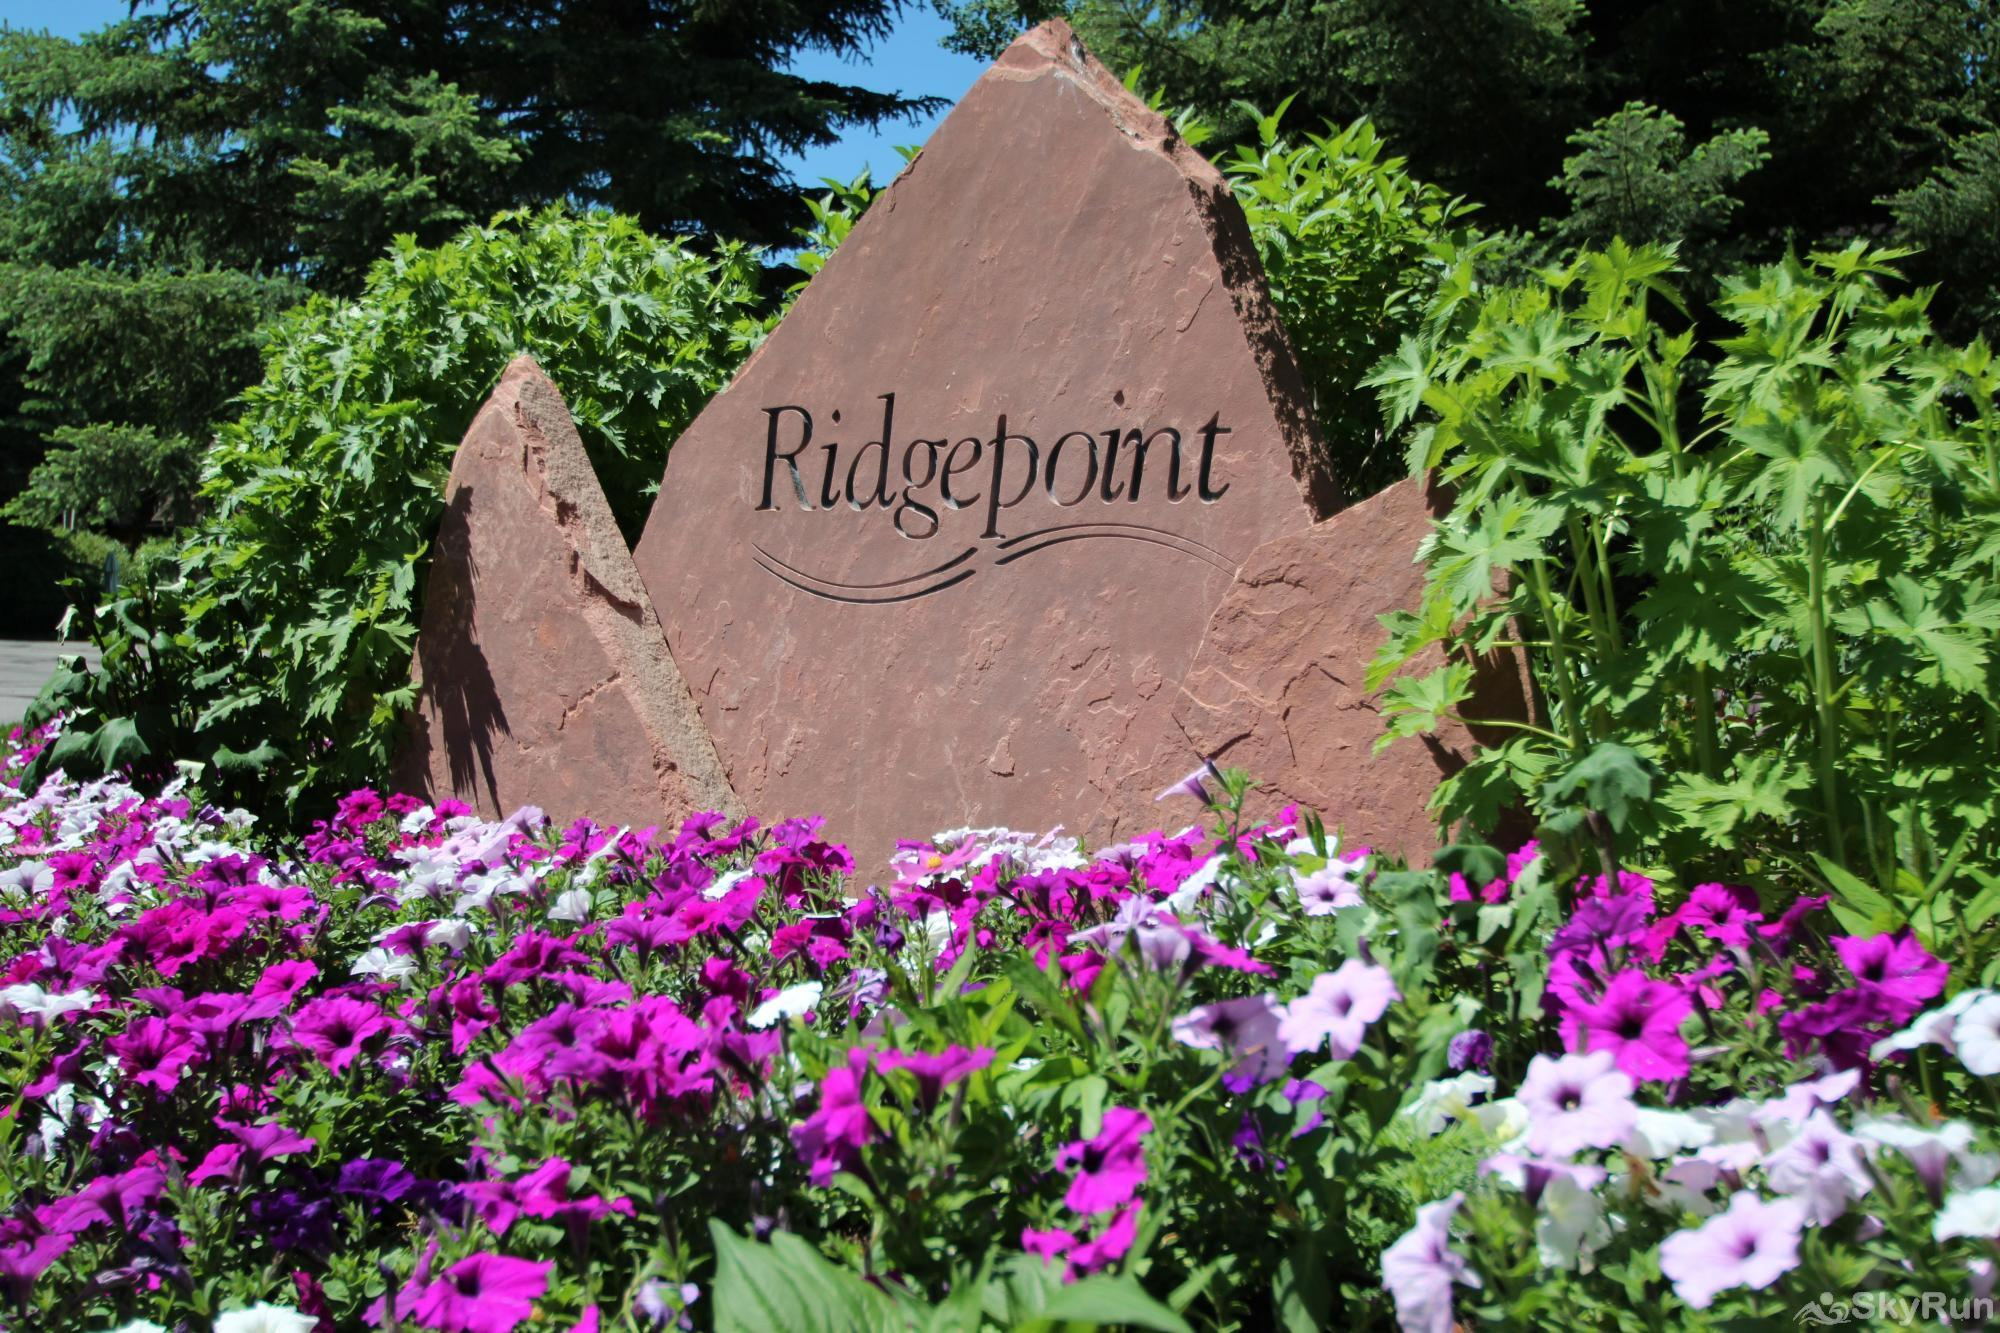 124 Ridgepoint Ridgepoint Townhomes!